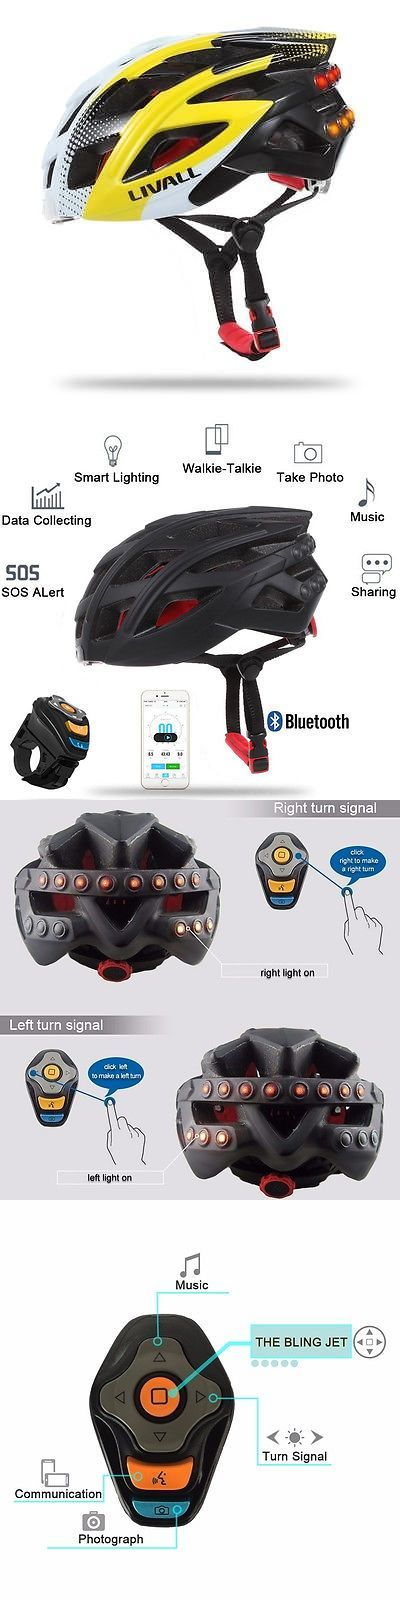 Helmet Accessories 177865: Bluetooth Smart Bike Helmet Led Tail Light Phone Call Music Player Yellow BUY IT NOW ONLY: $165.95